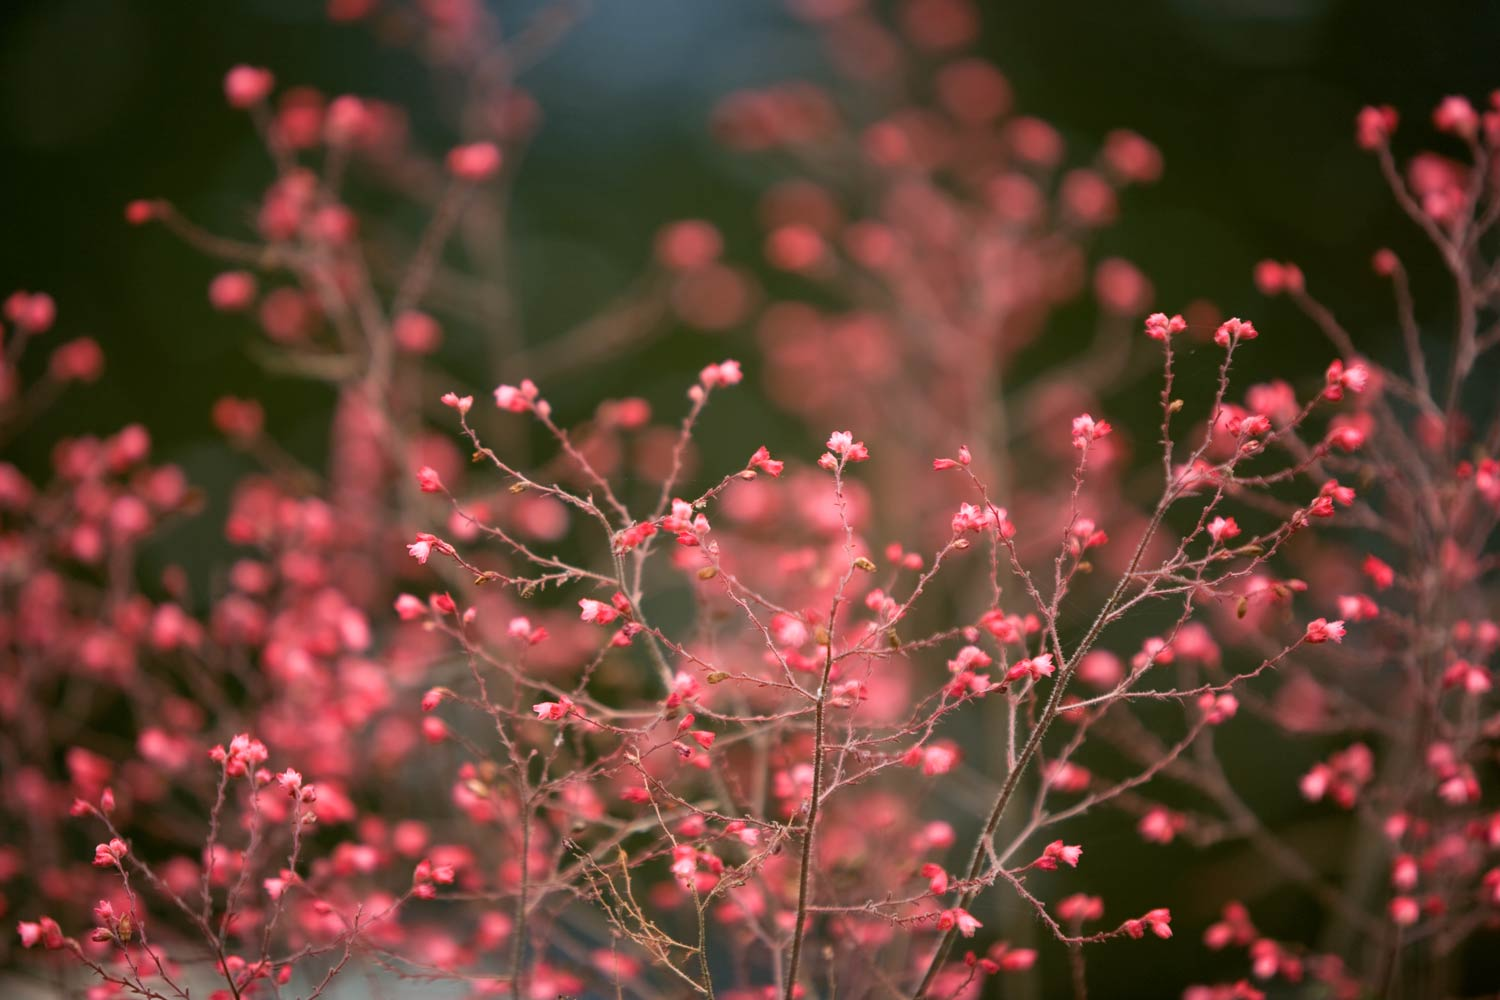 Ethereal red flowers